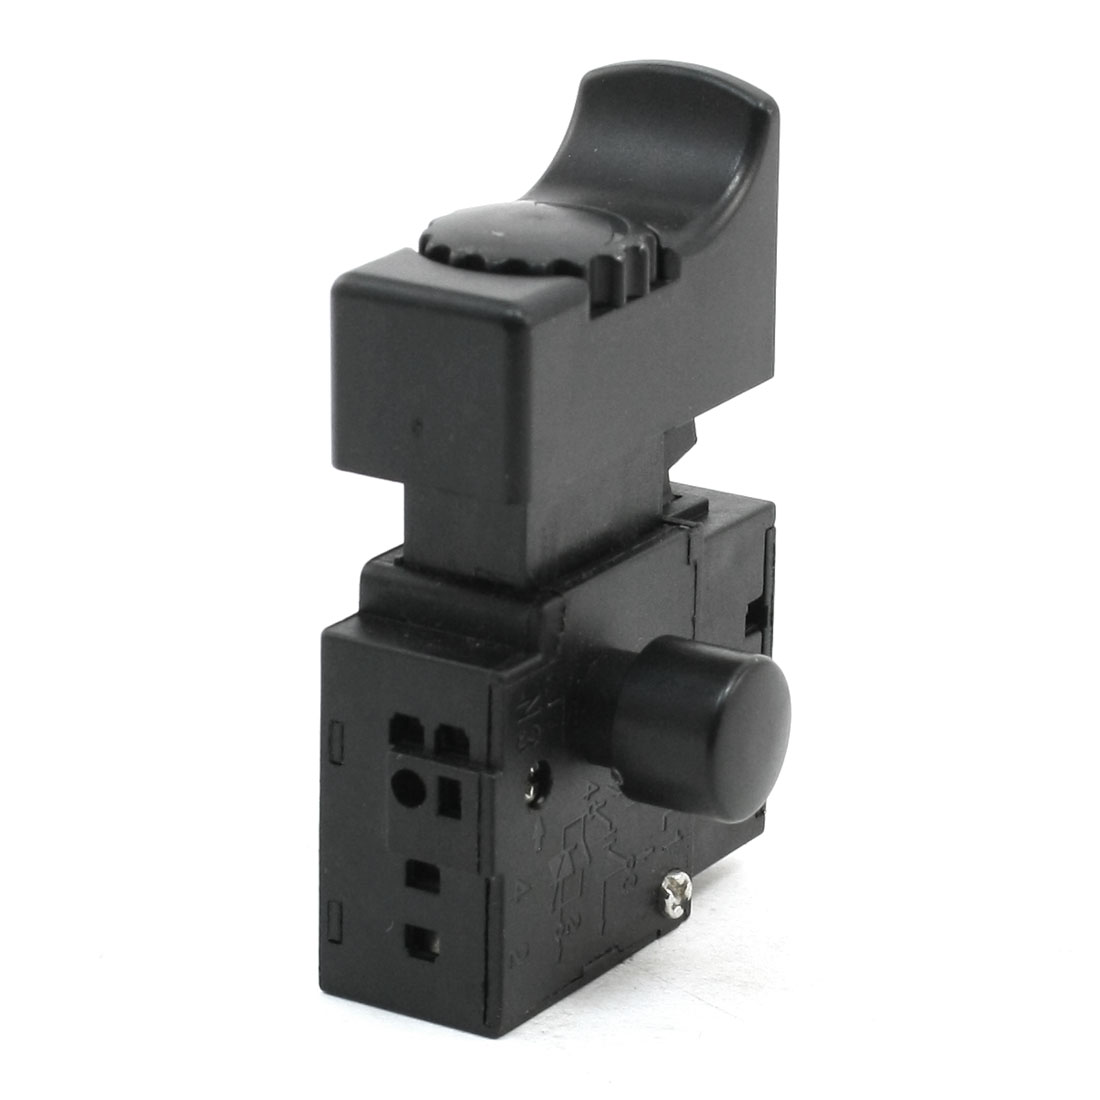 AC 250V 8A Speed Control Momentary Trigger Switch for Electric Drill